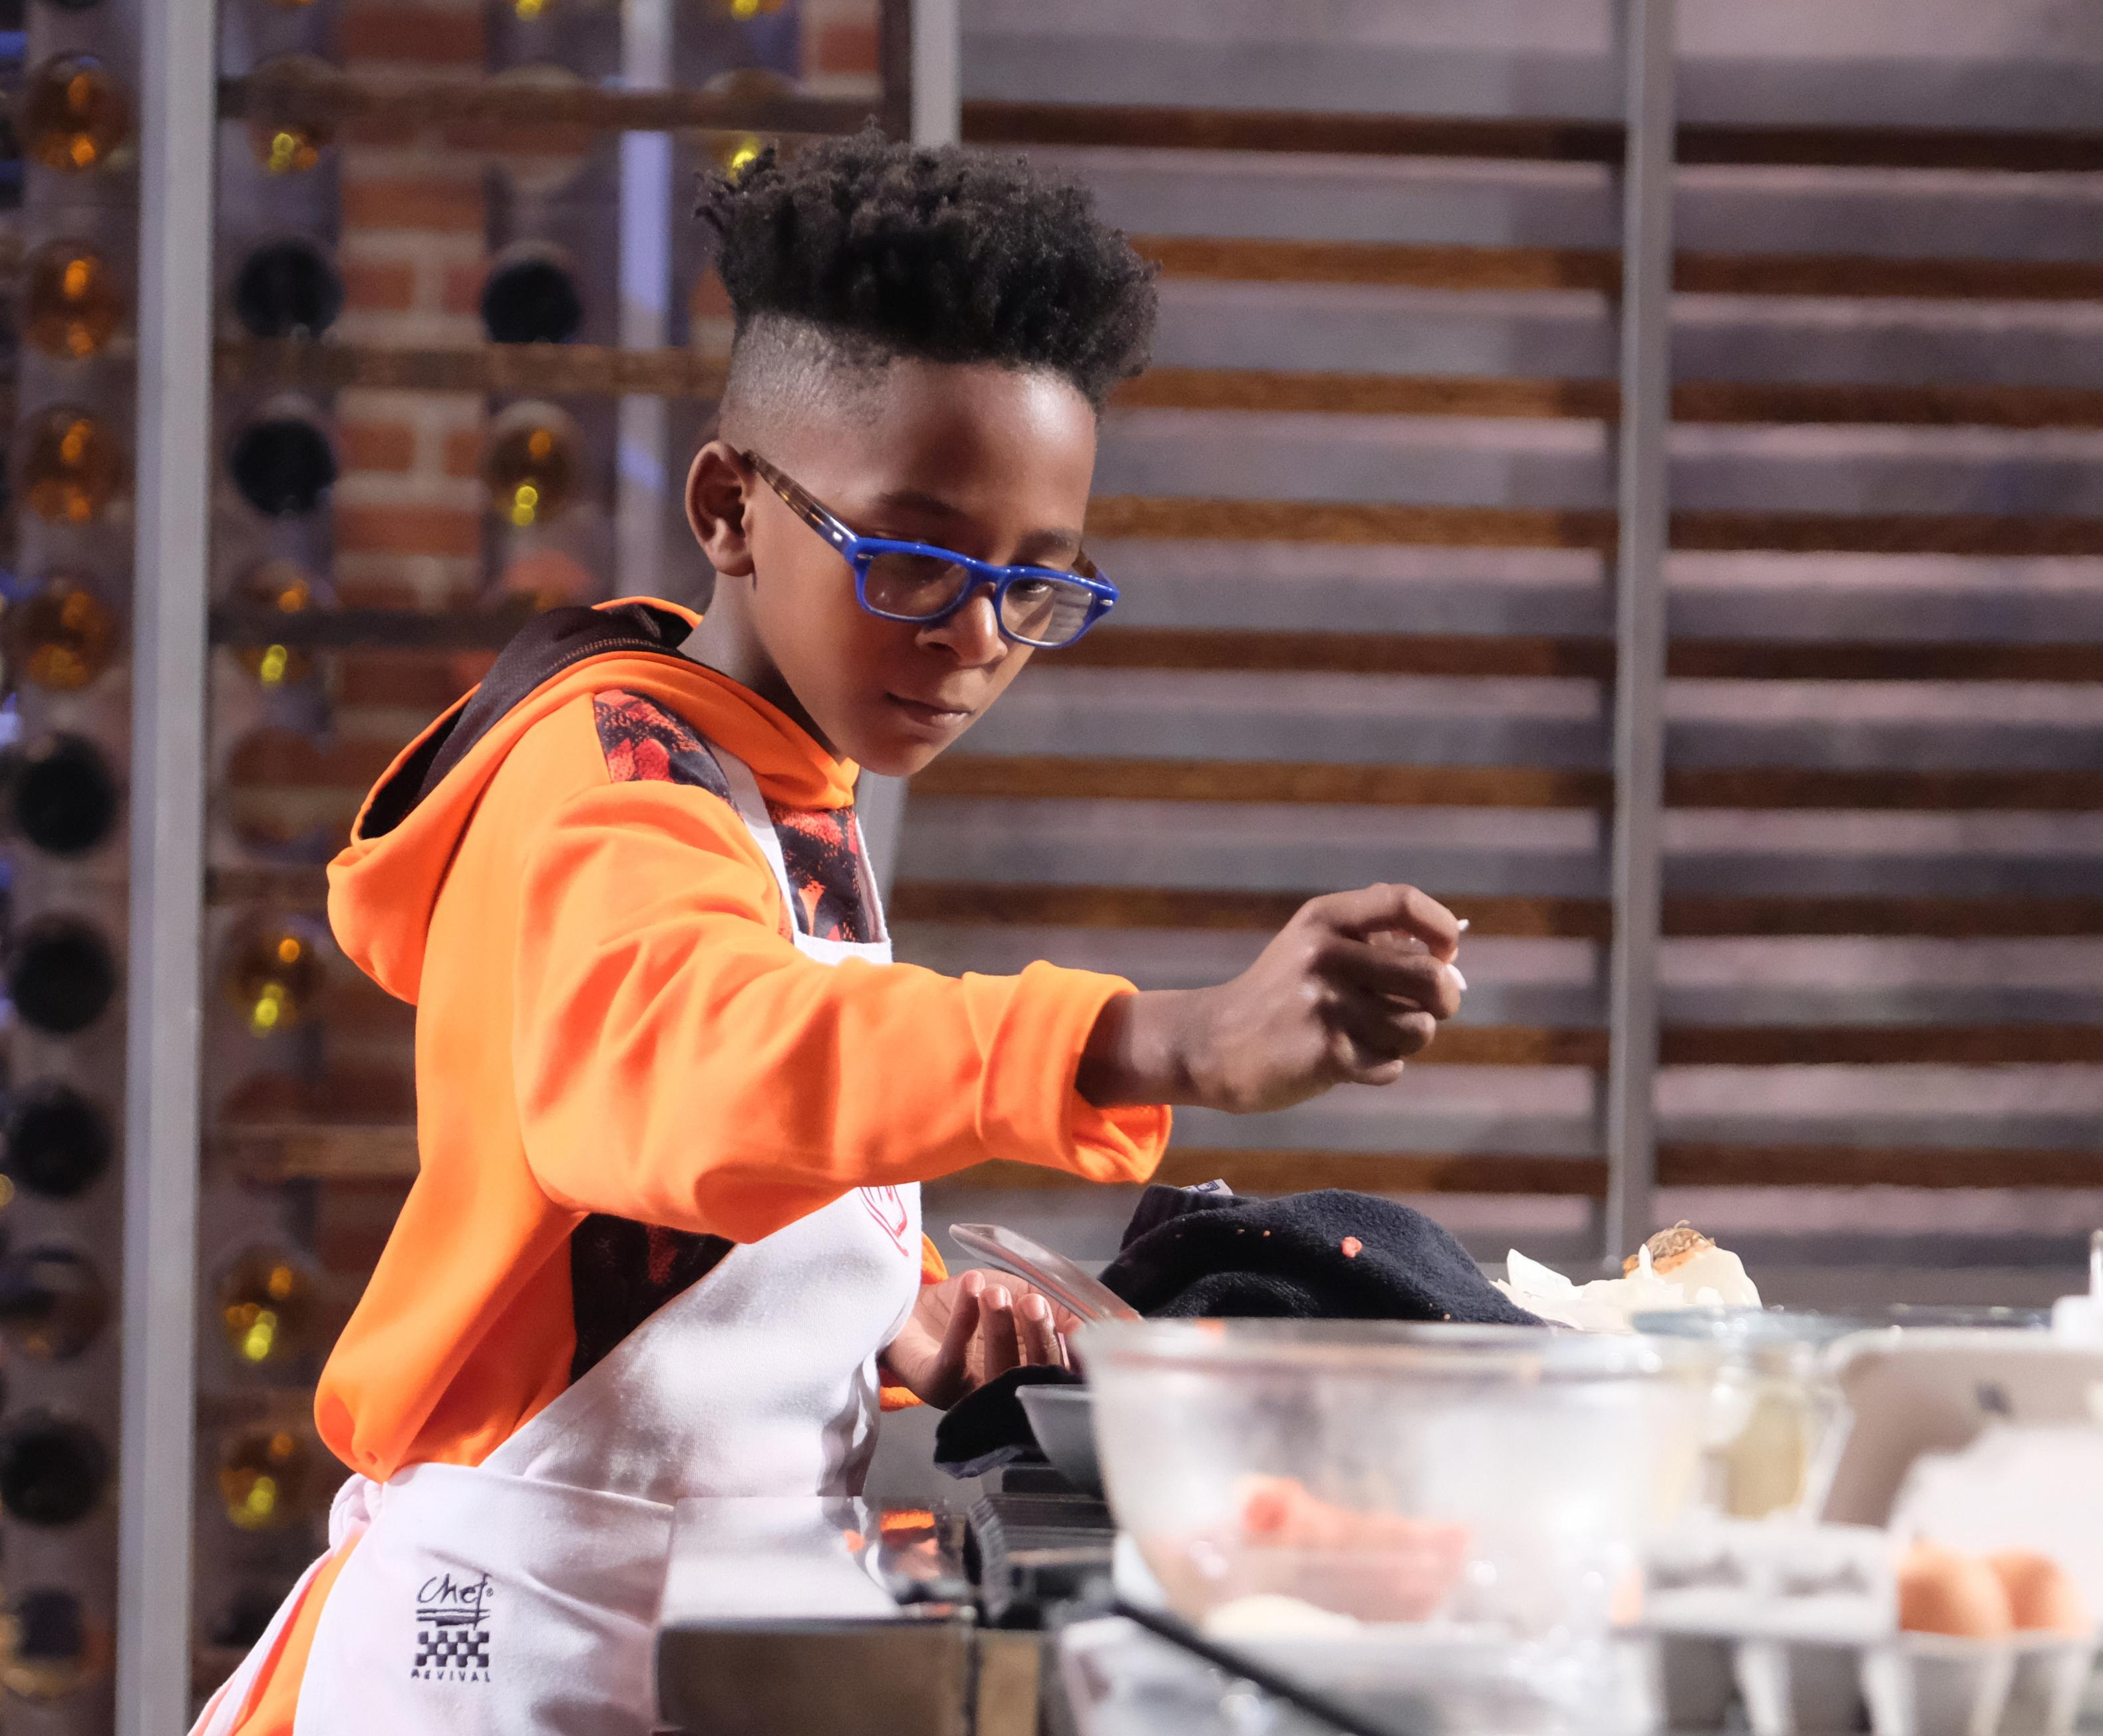 masterchef - photo #44